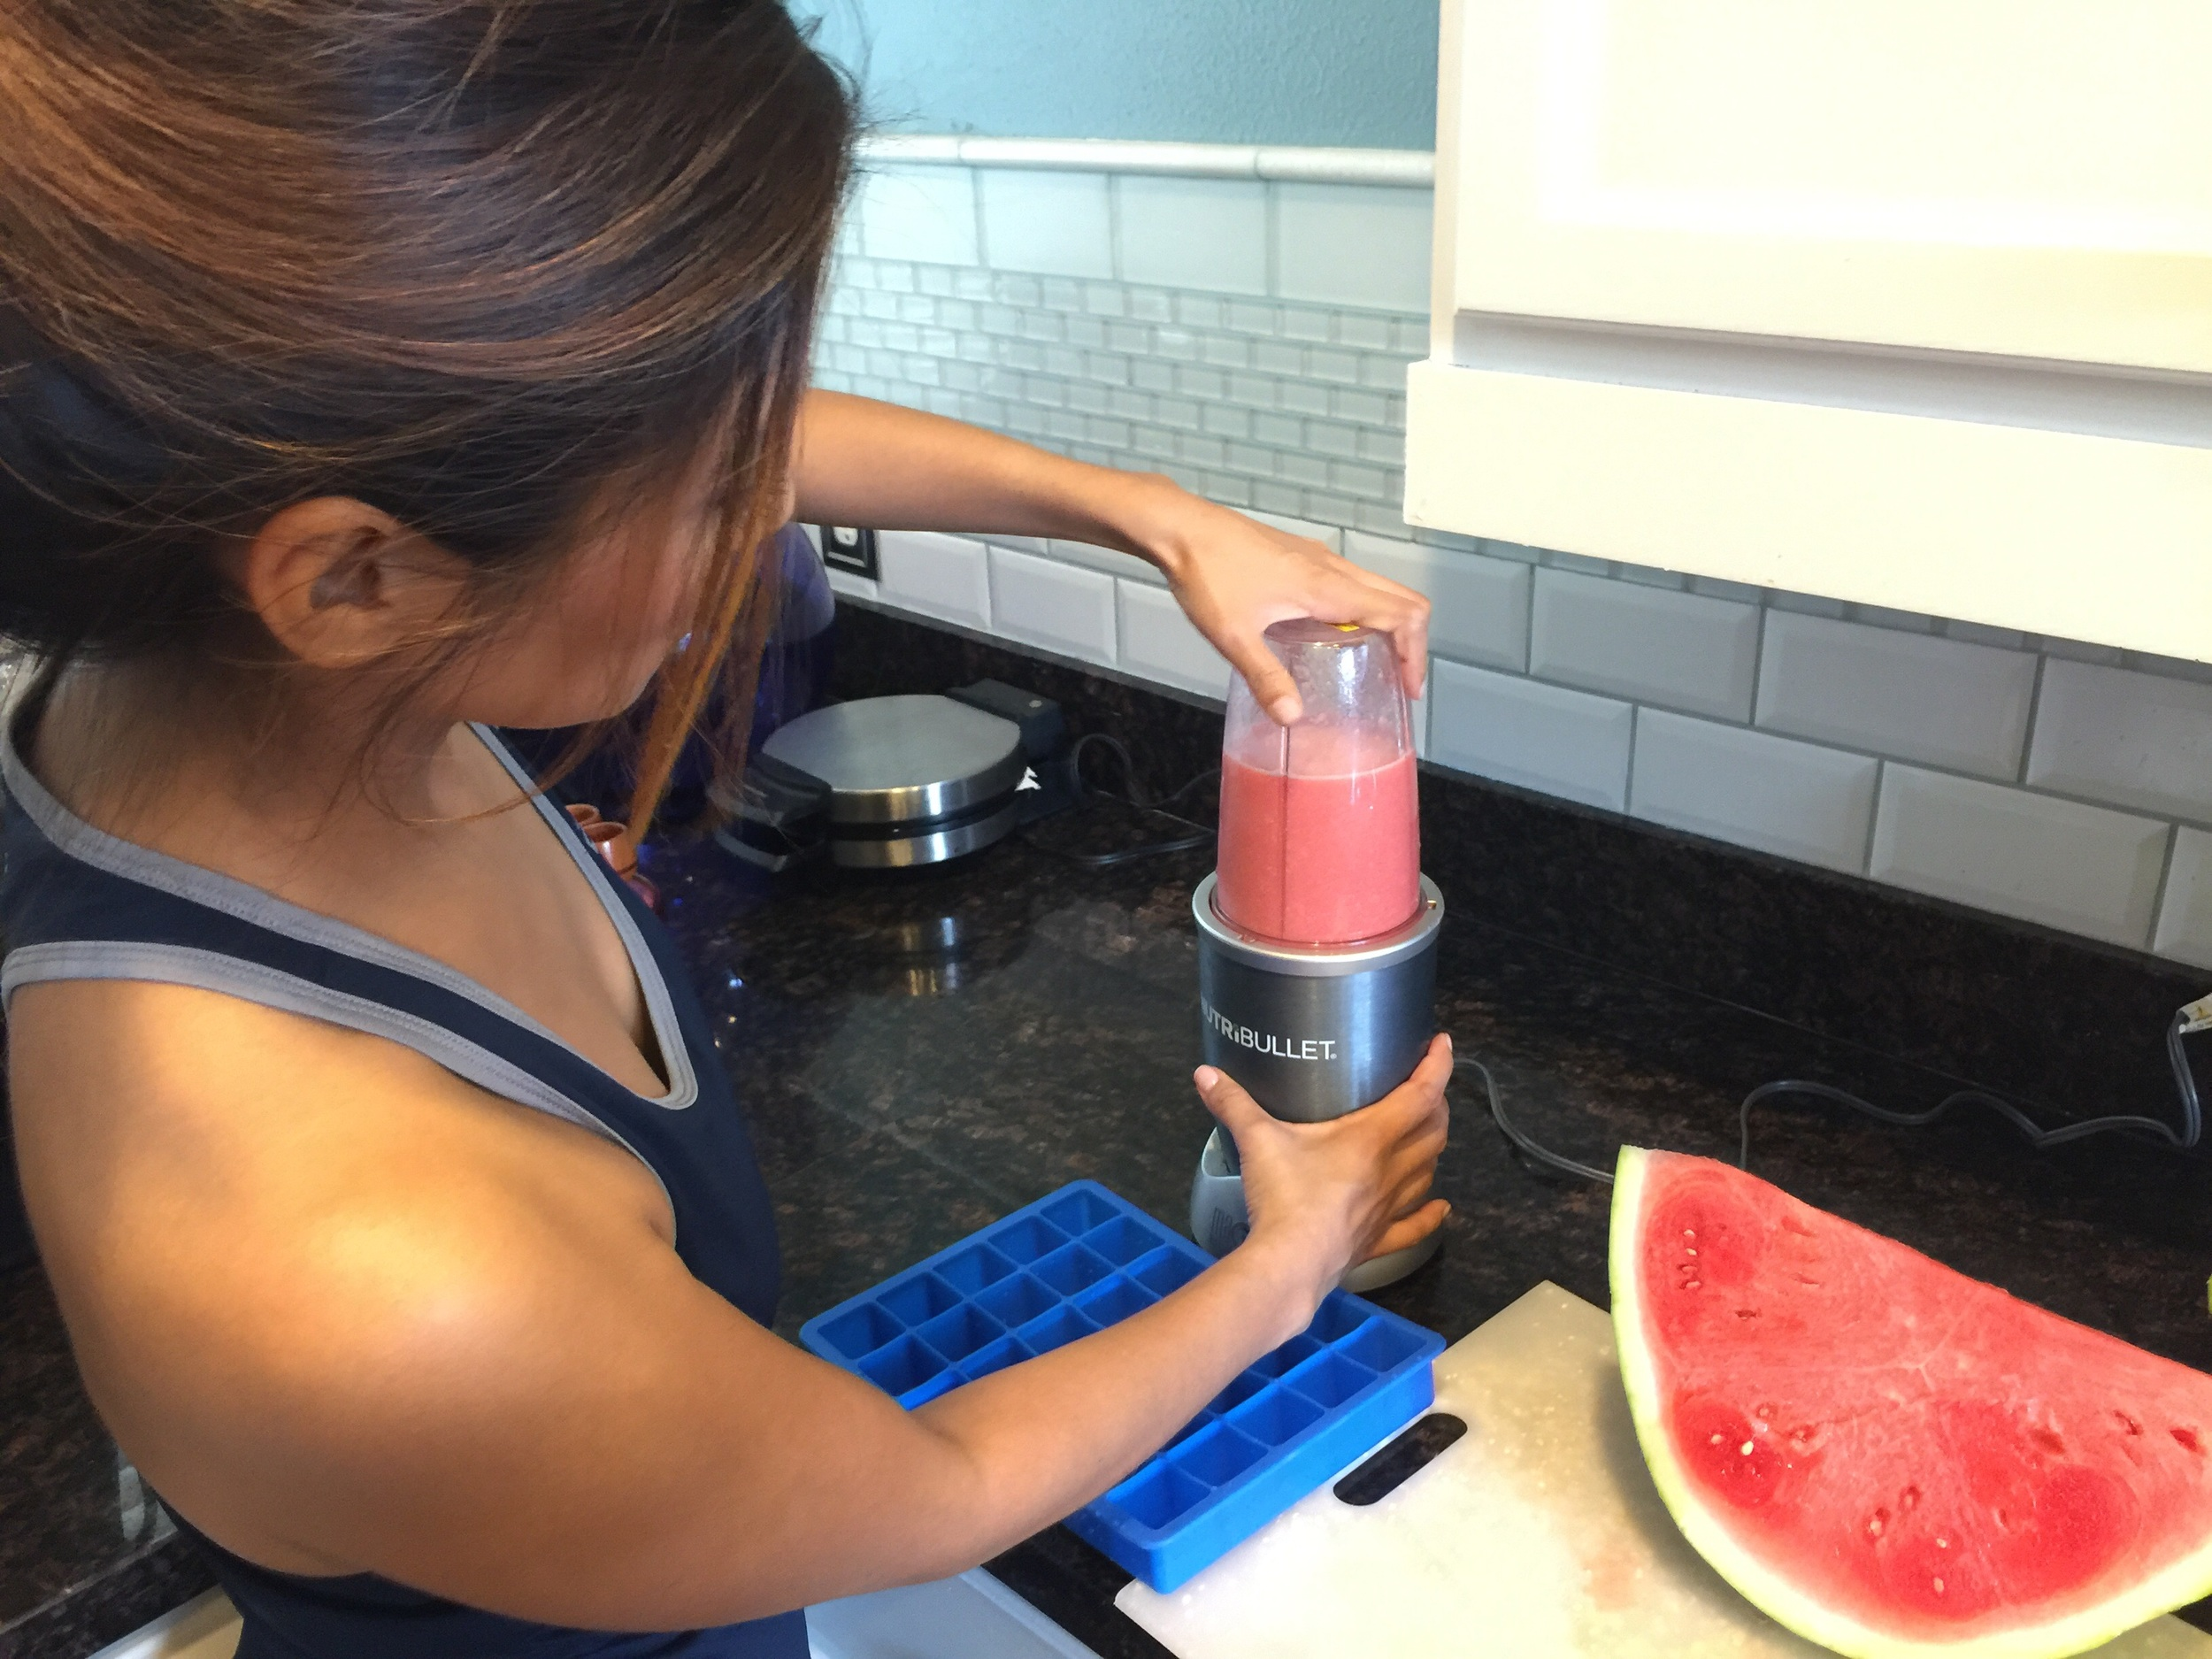 If you don't own the nutribullet, a blender will work too.